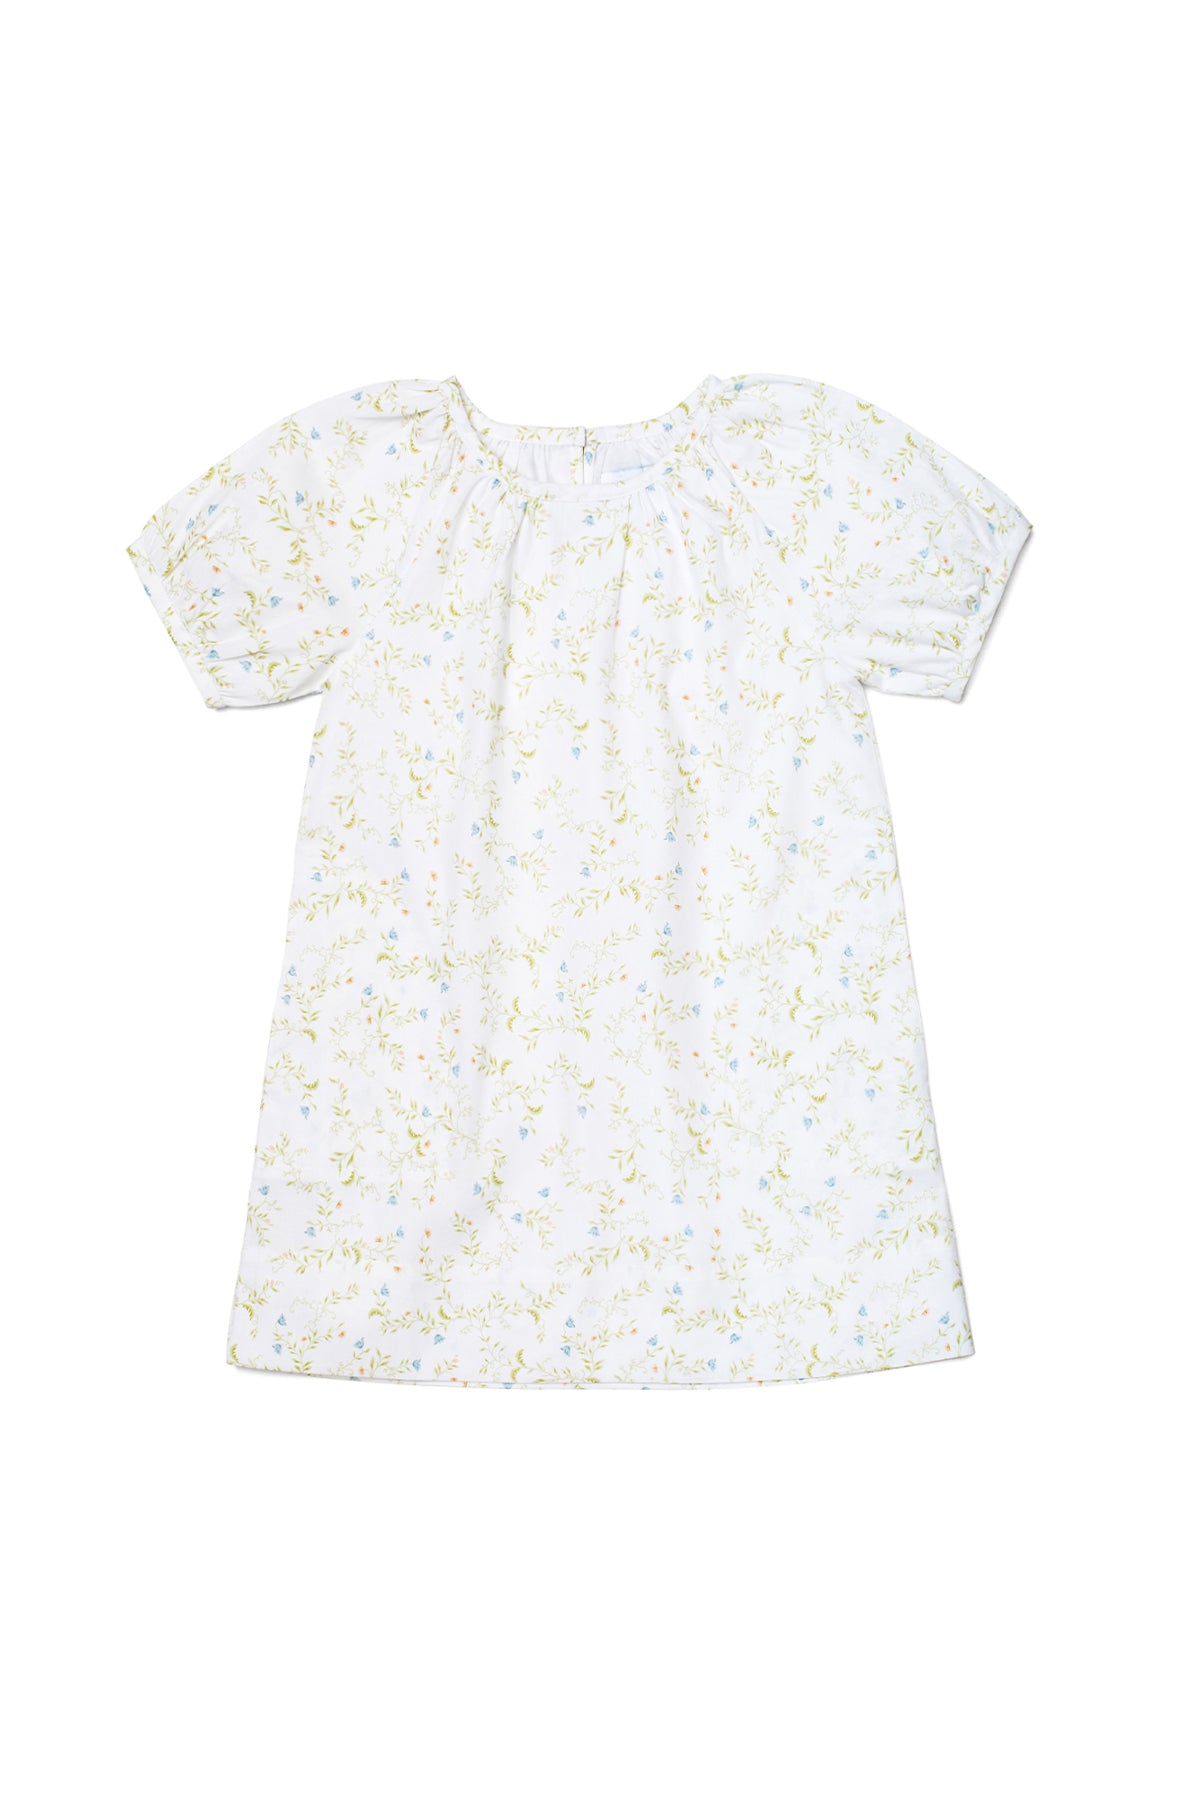 JB x LAKE Baby Gathered Sleeve Dress in Spring Vine